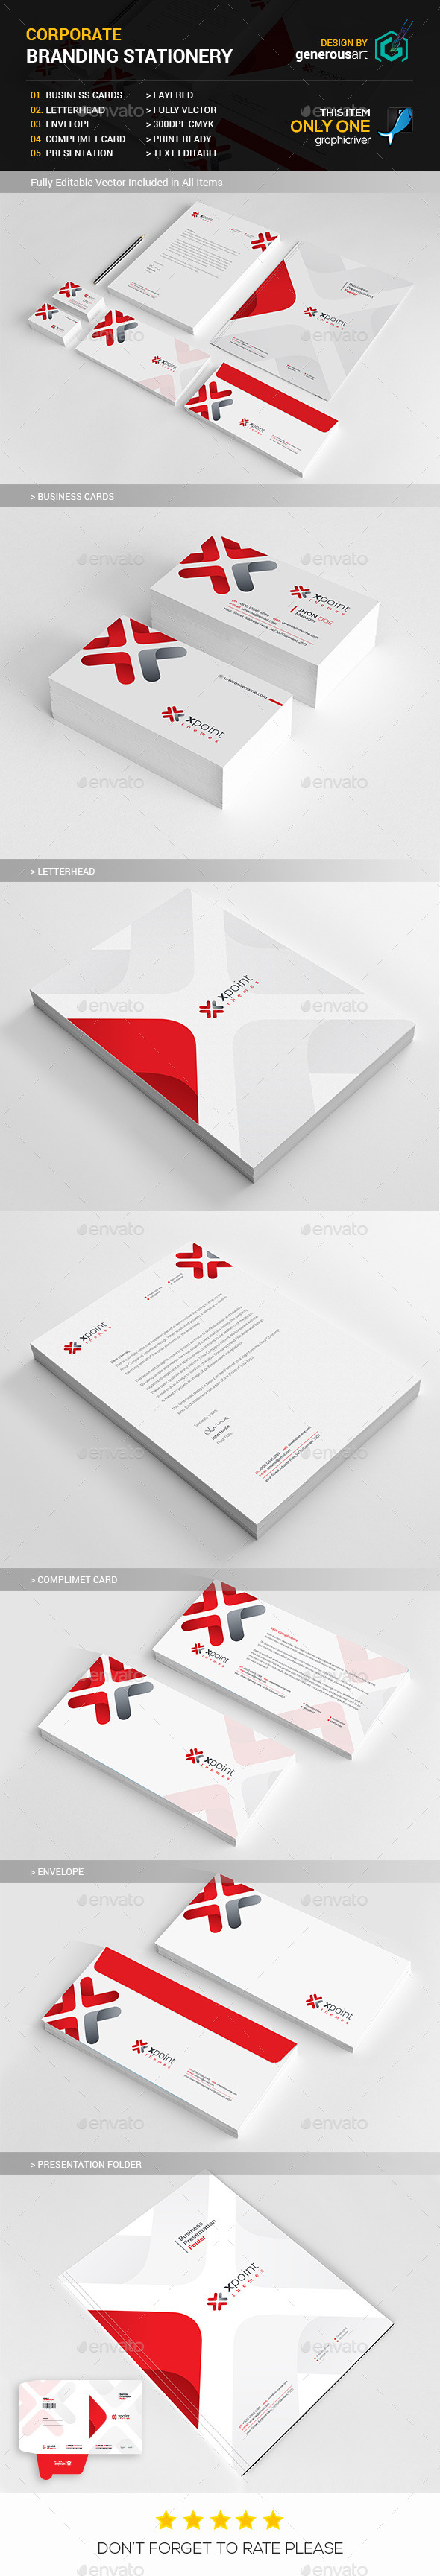 GraphicRiver Branding Stationery 2 11949160